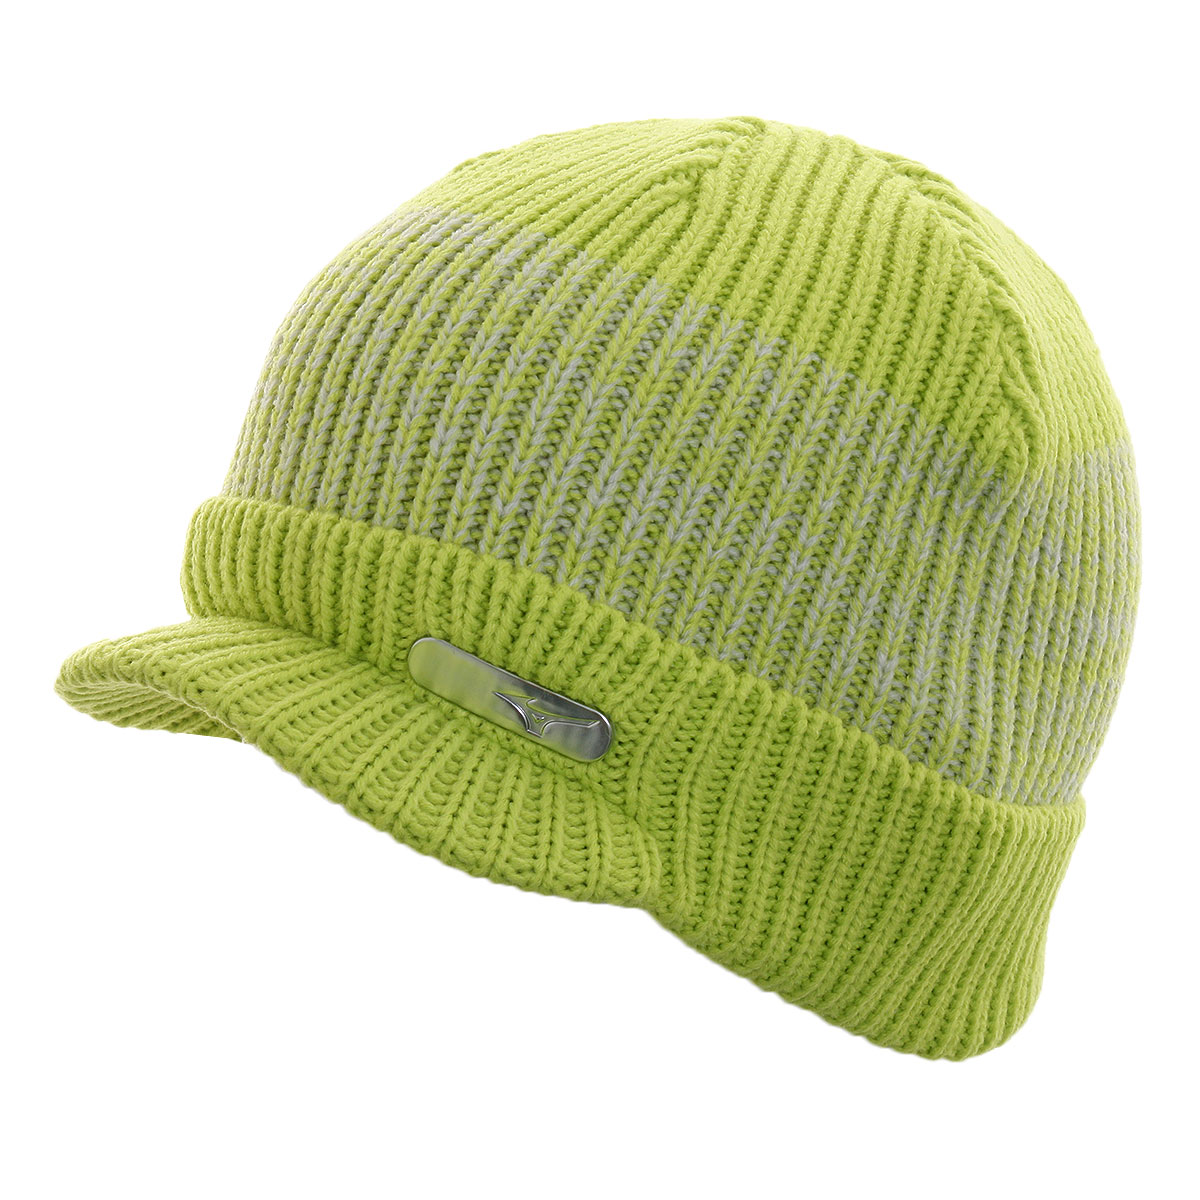 Knitting Pattern For Peaked Beanie : Mizuno Golf 2016 Mens Peaked Beanie Winter Wooly Hat Cap